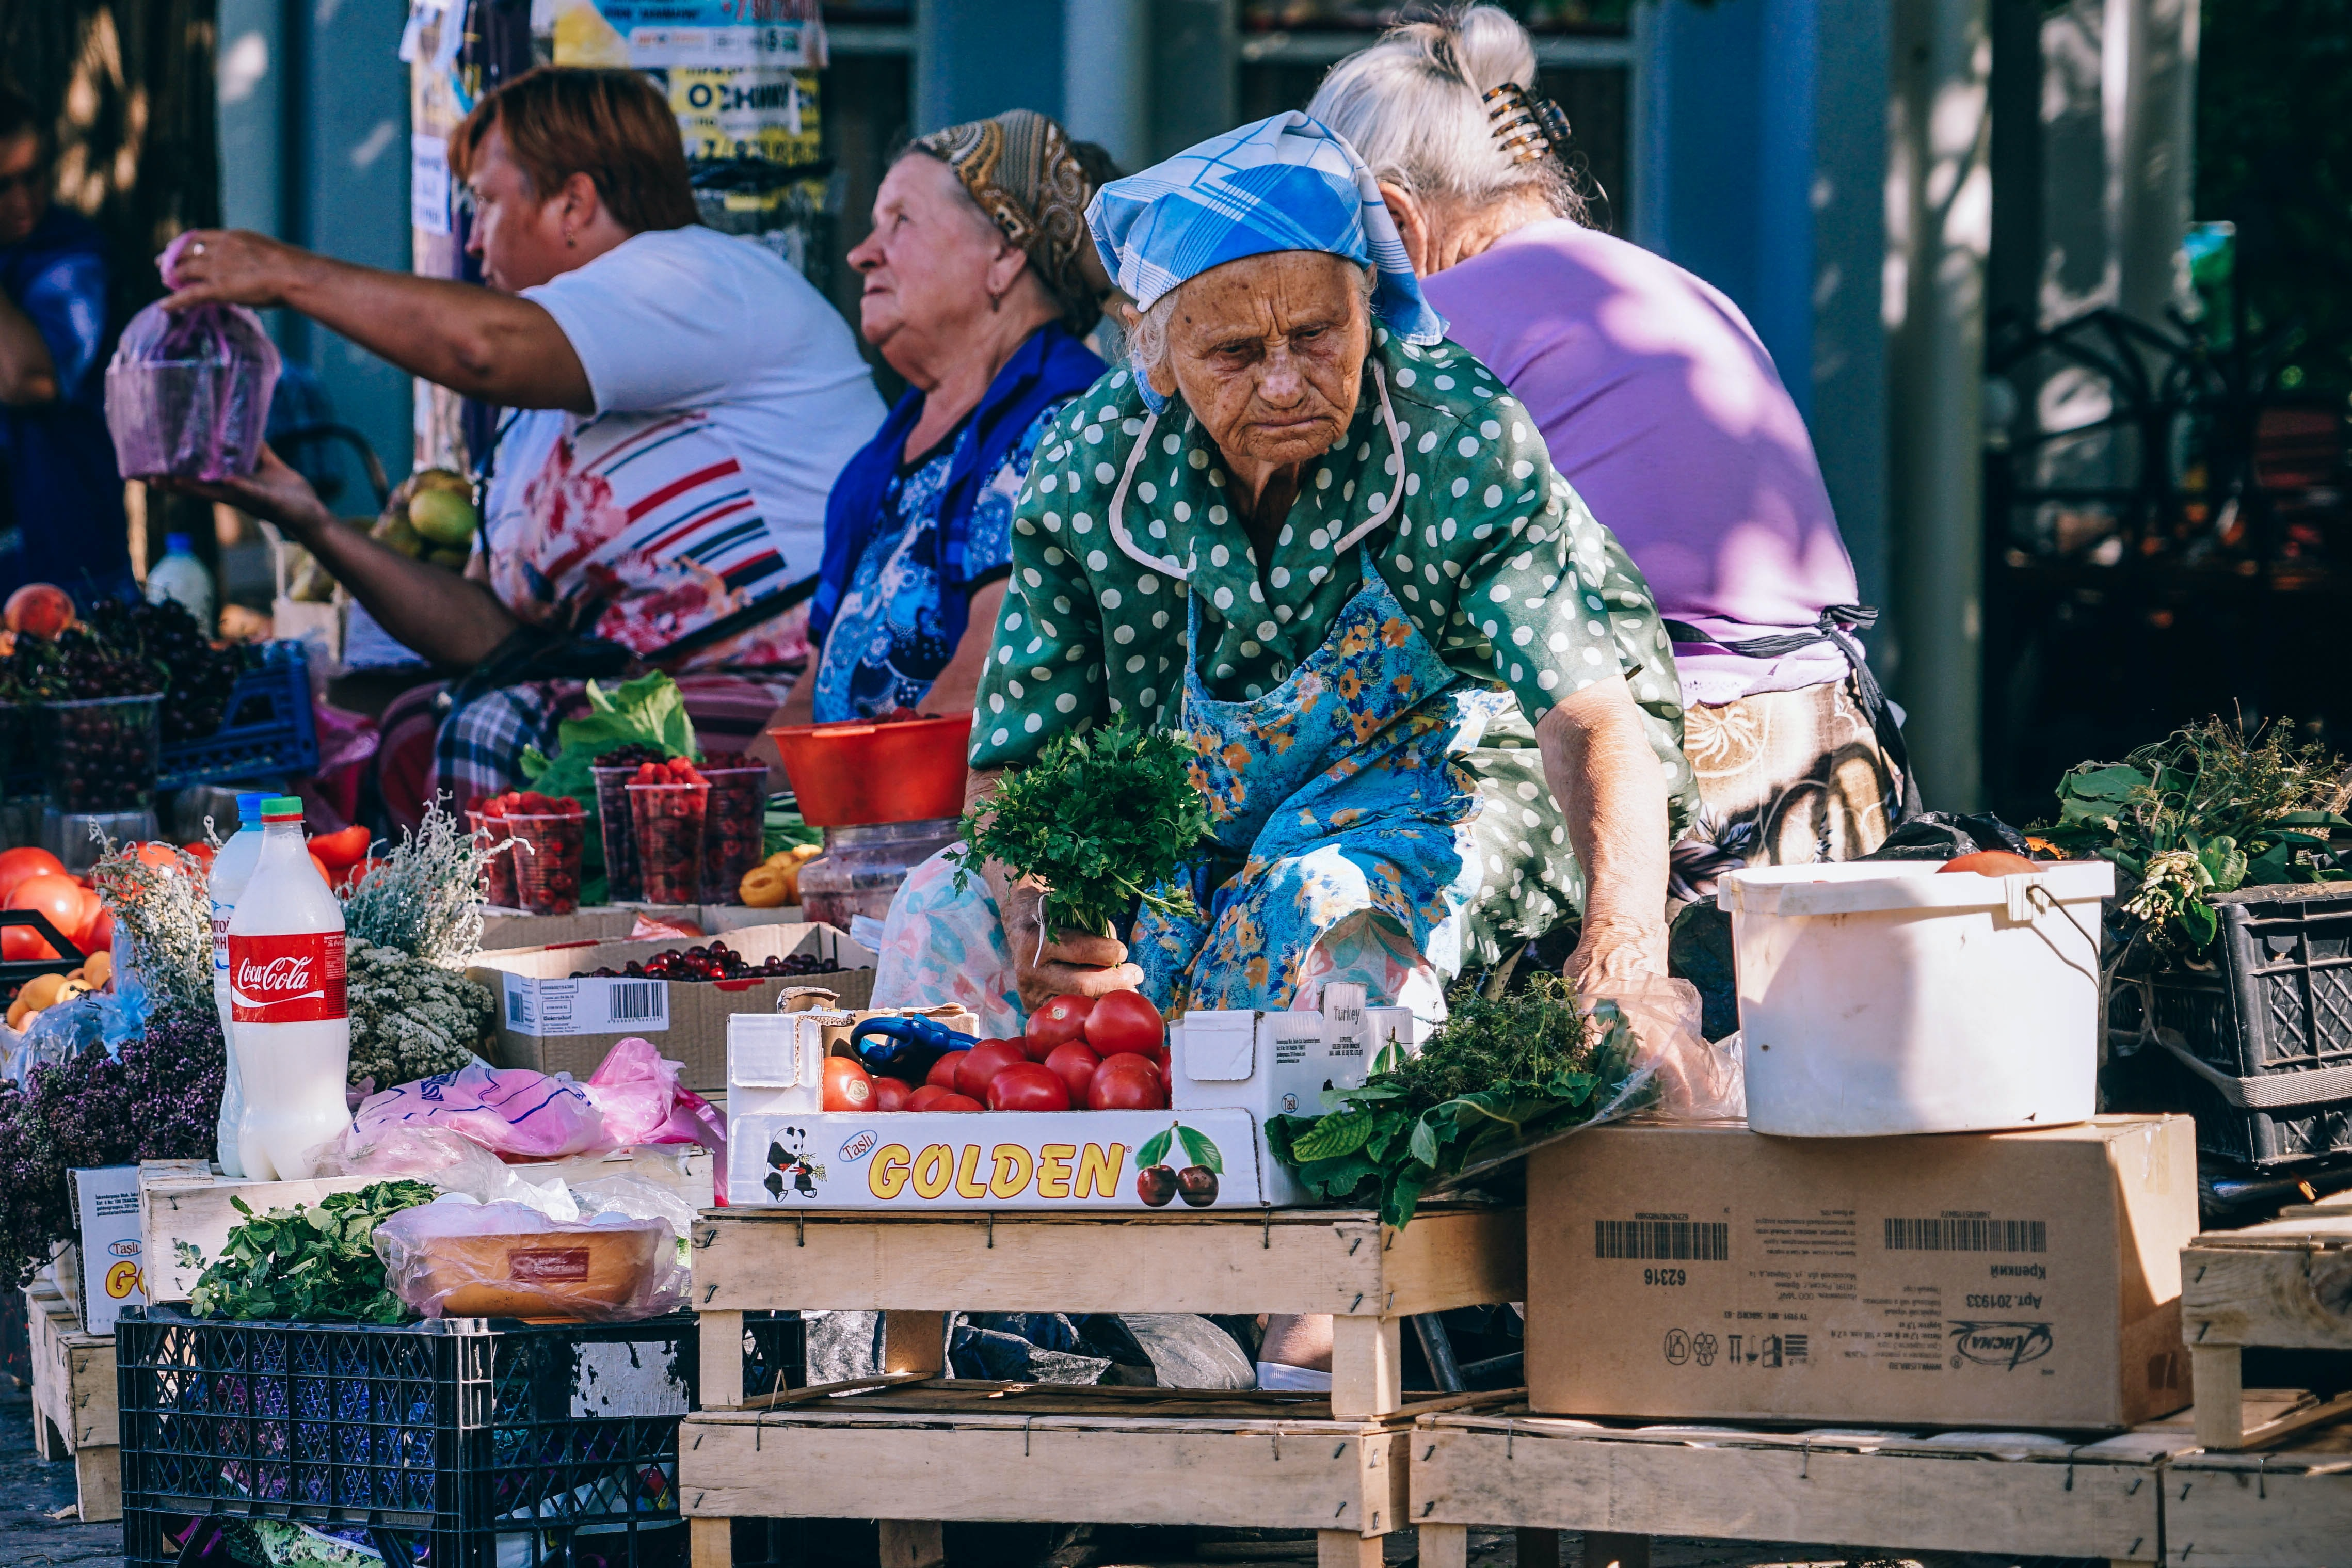 woman vending tomatoes on stall